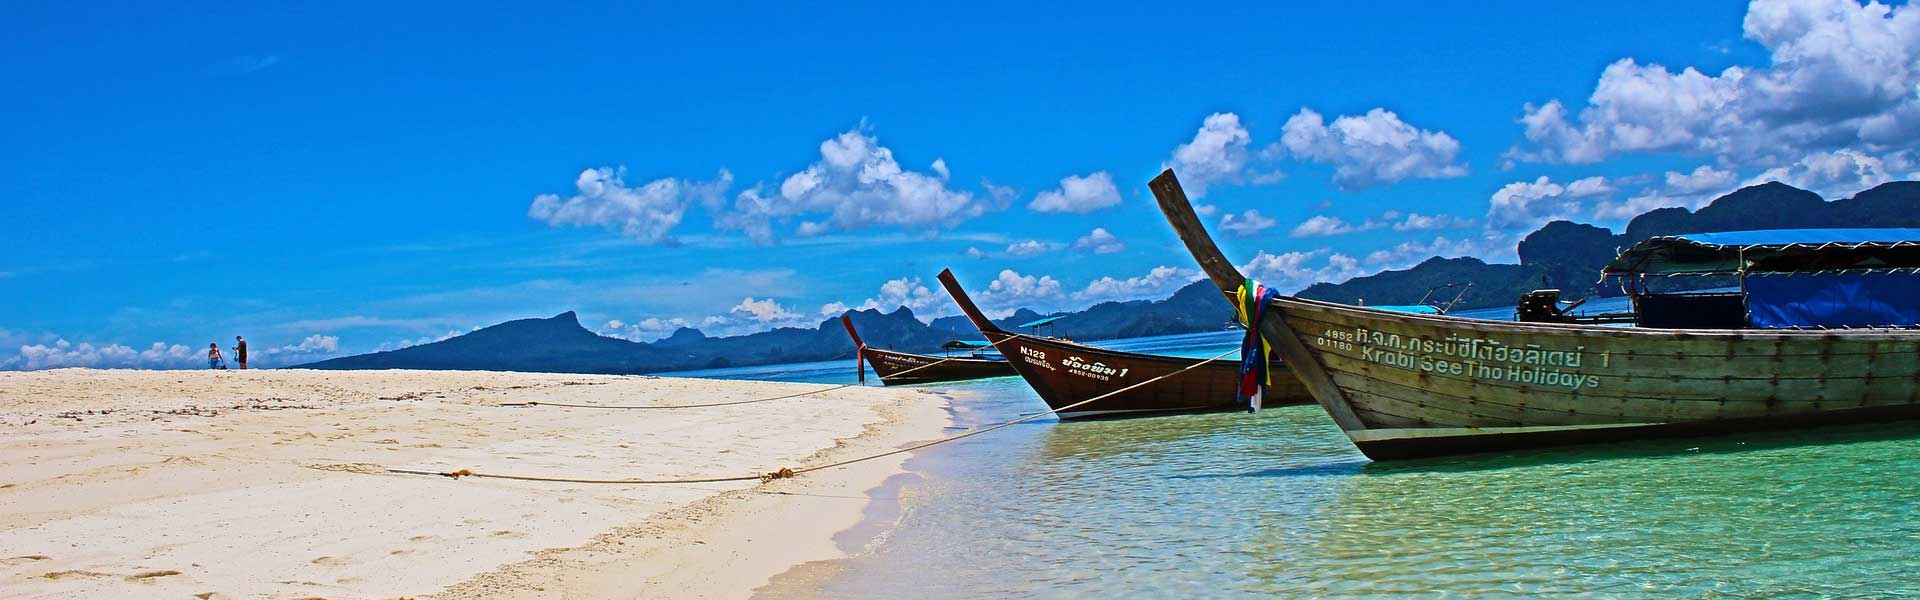 Top 5 must-see places in Thailand